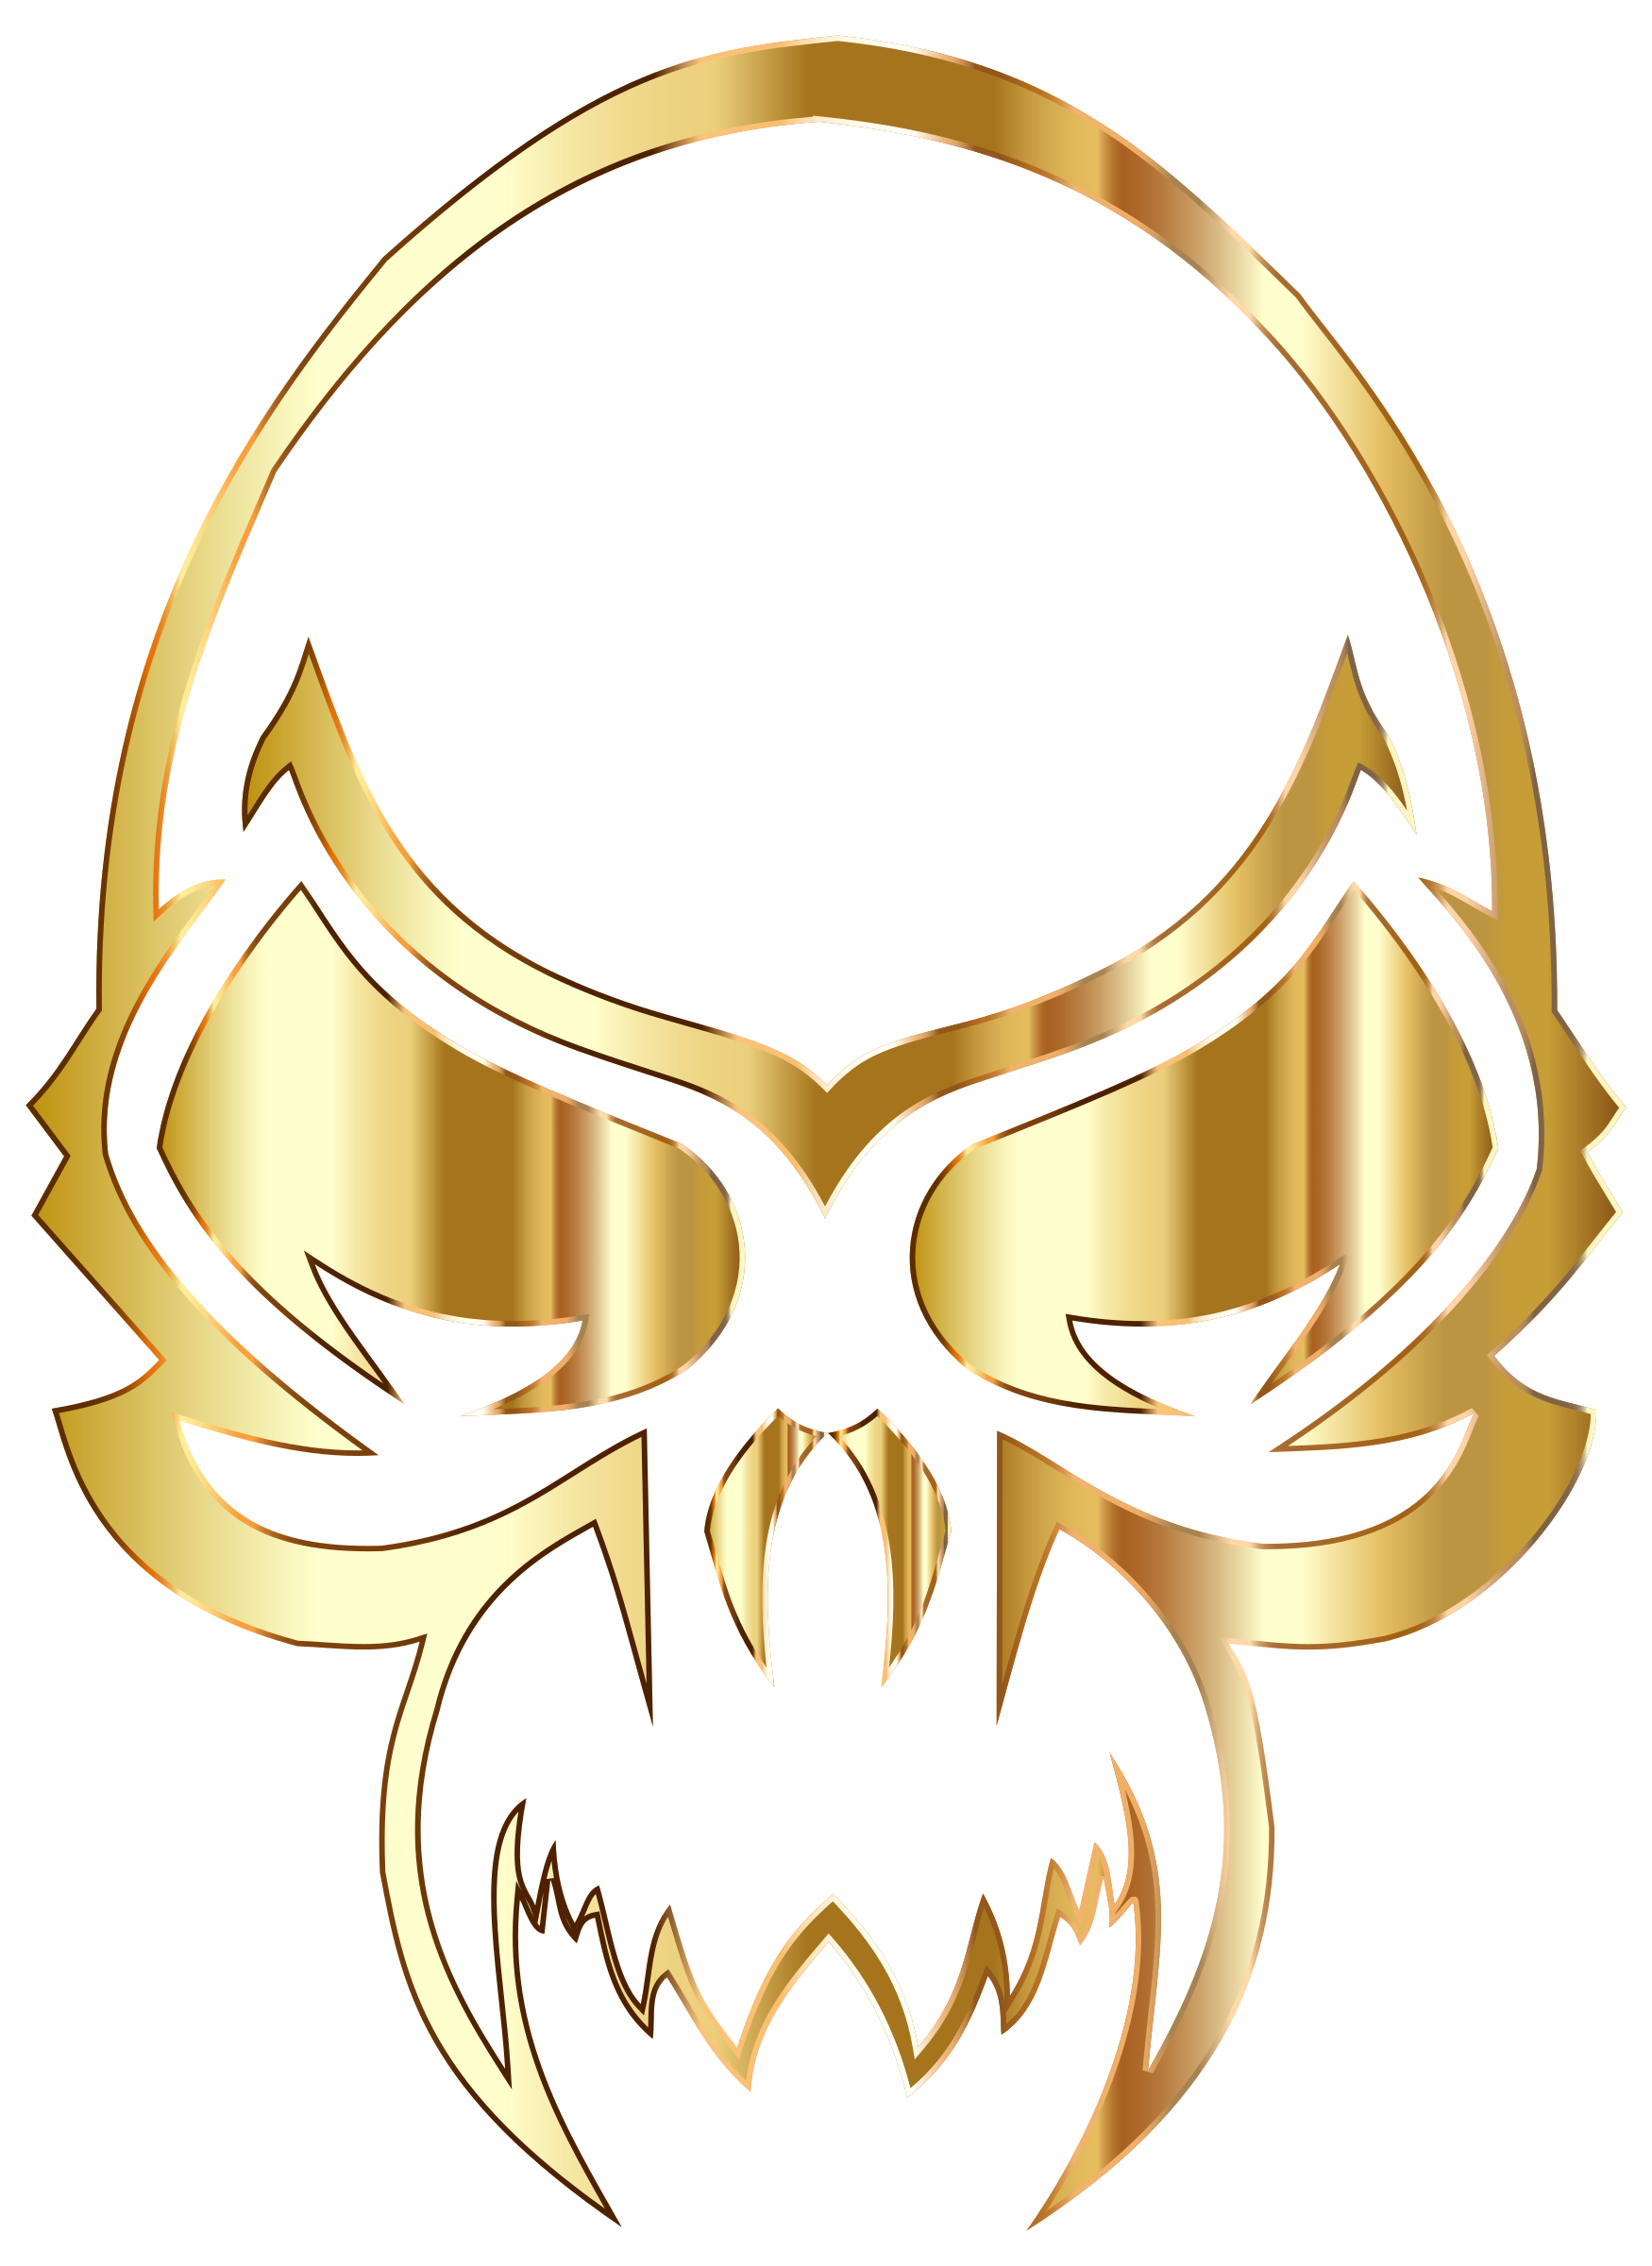 Golden Skull by GDJ